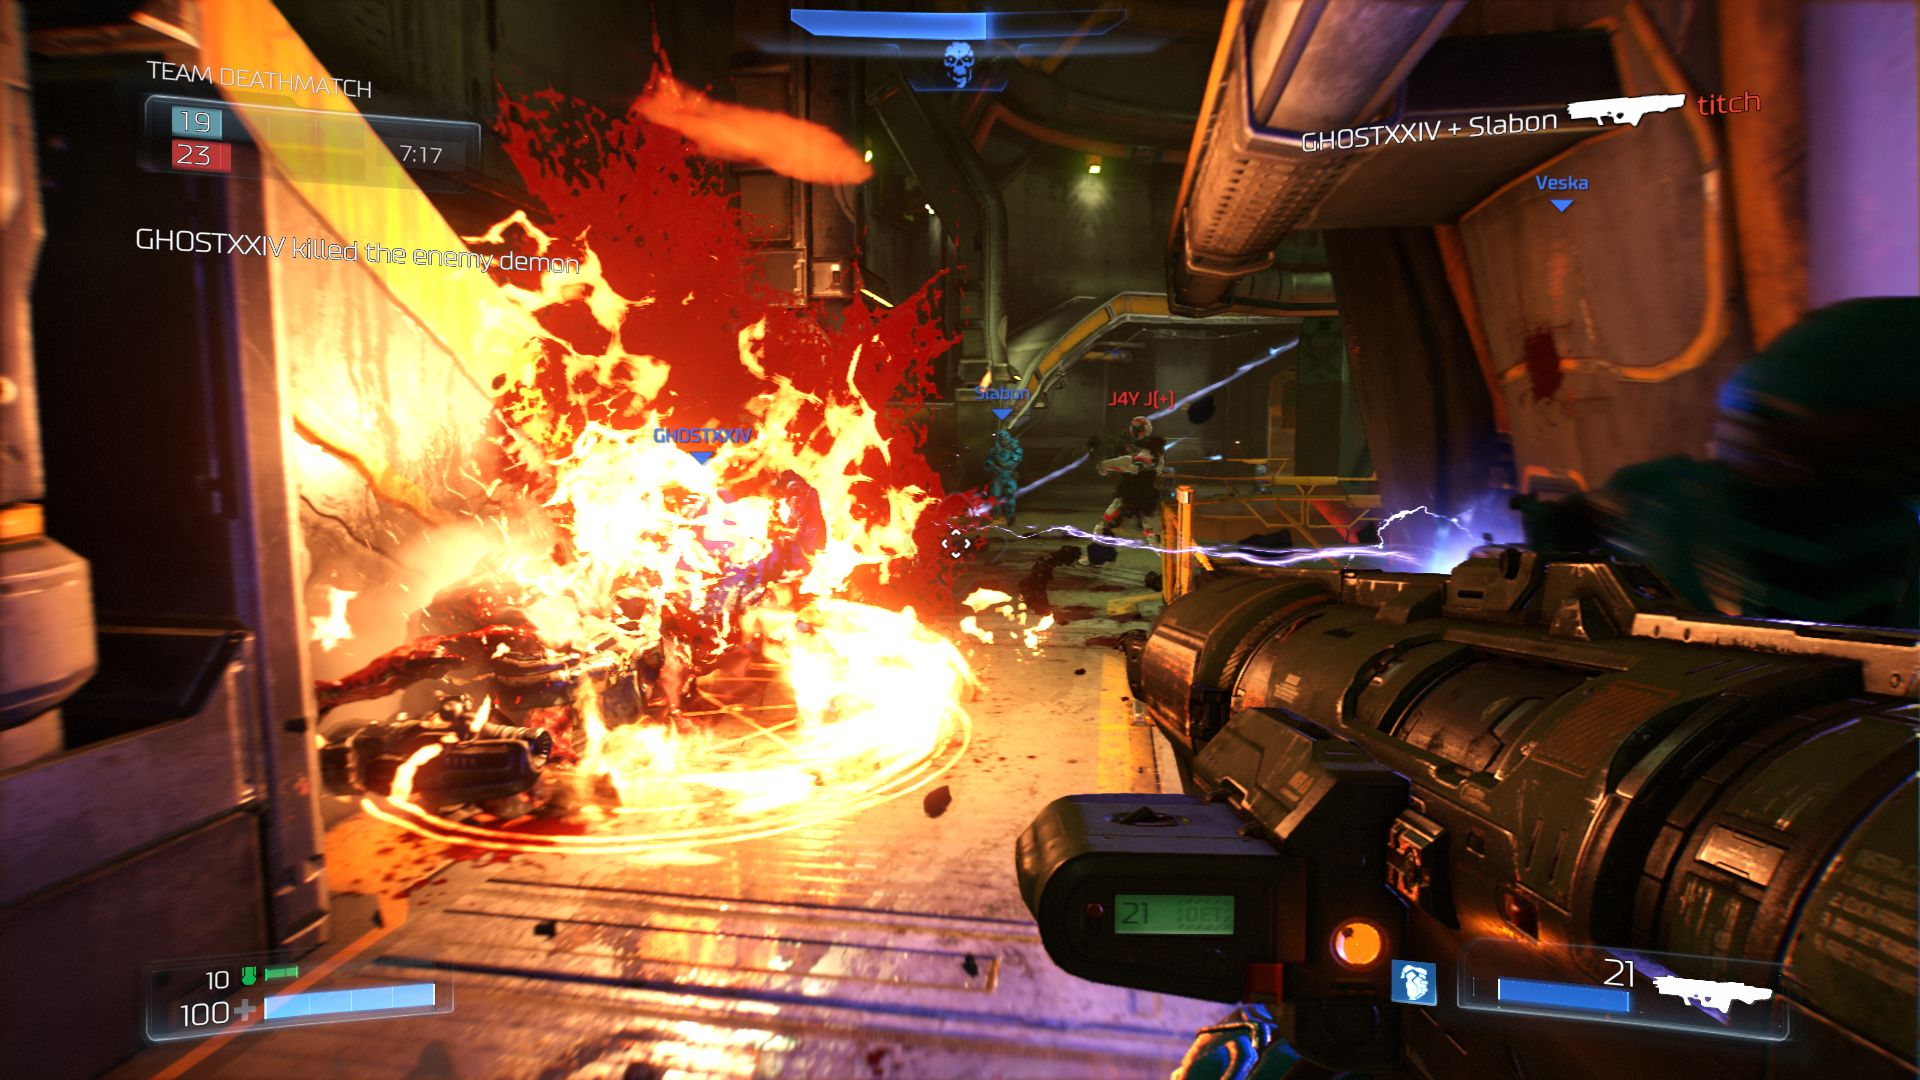 Doom open beta kicks off this week – here's what's in it